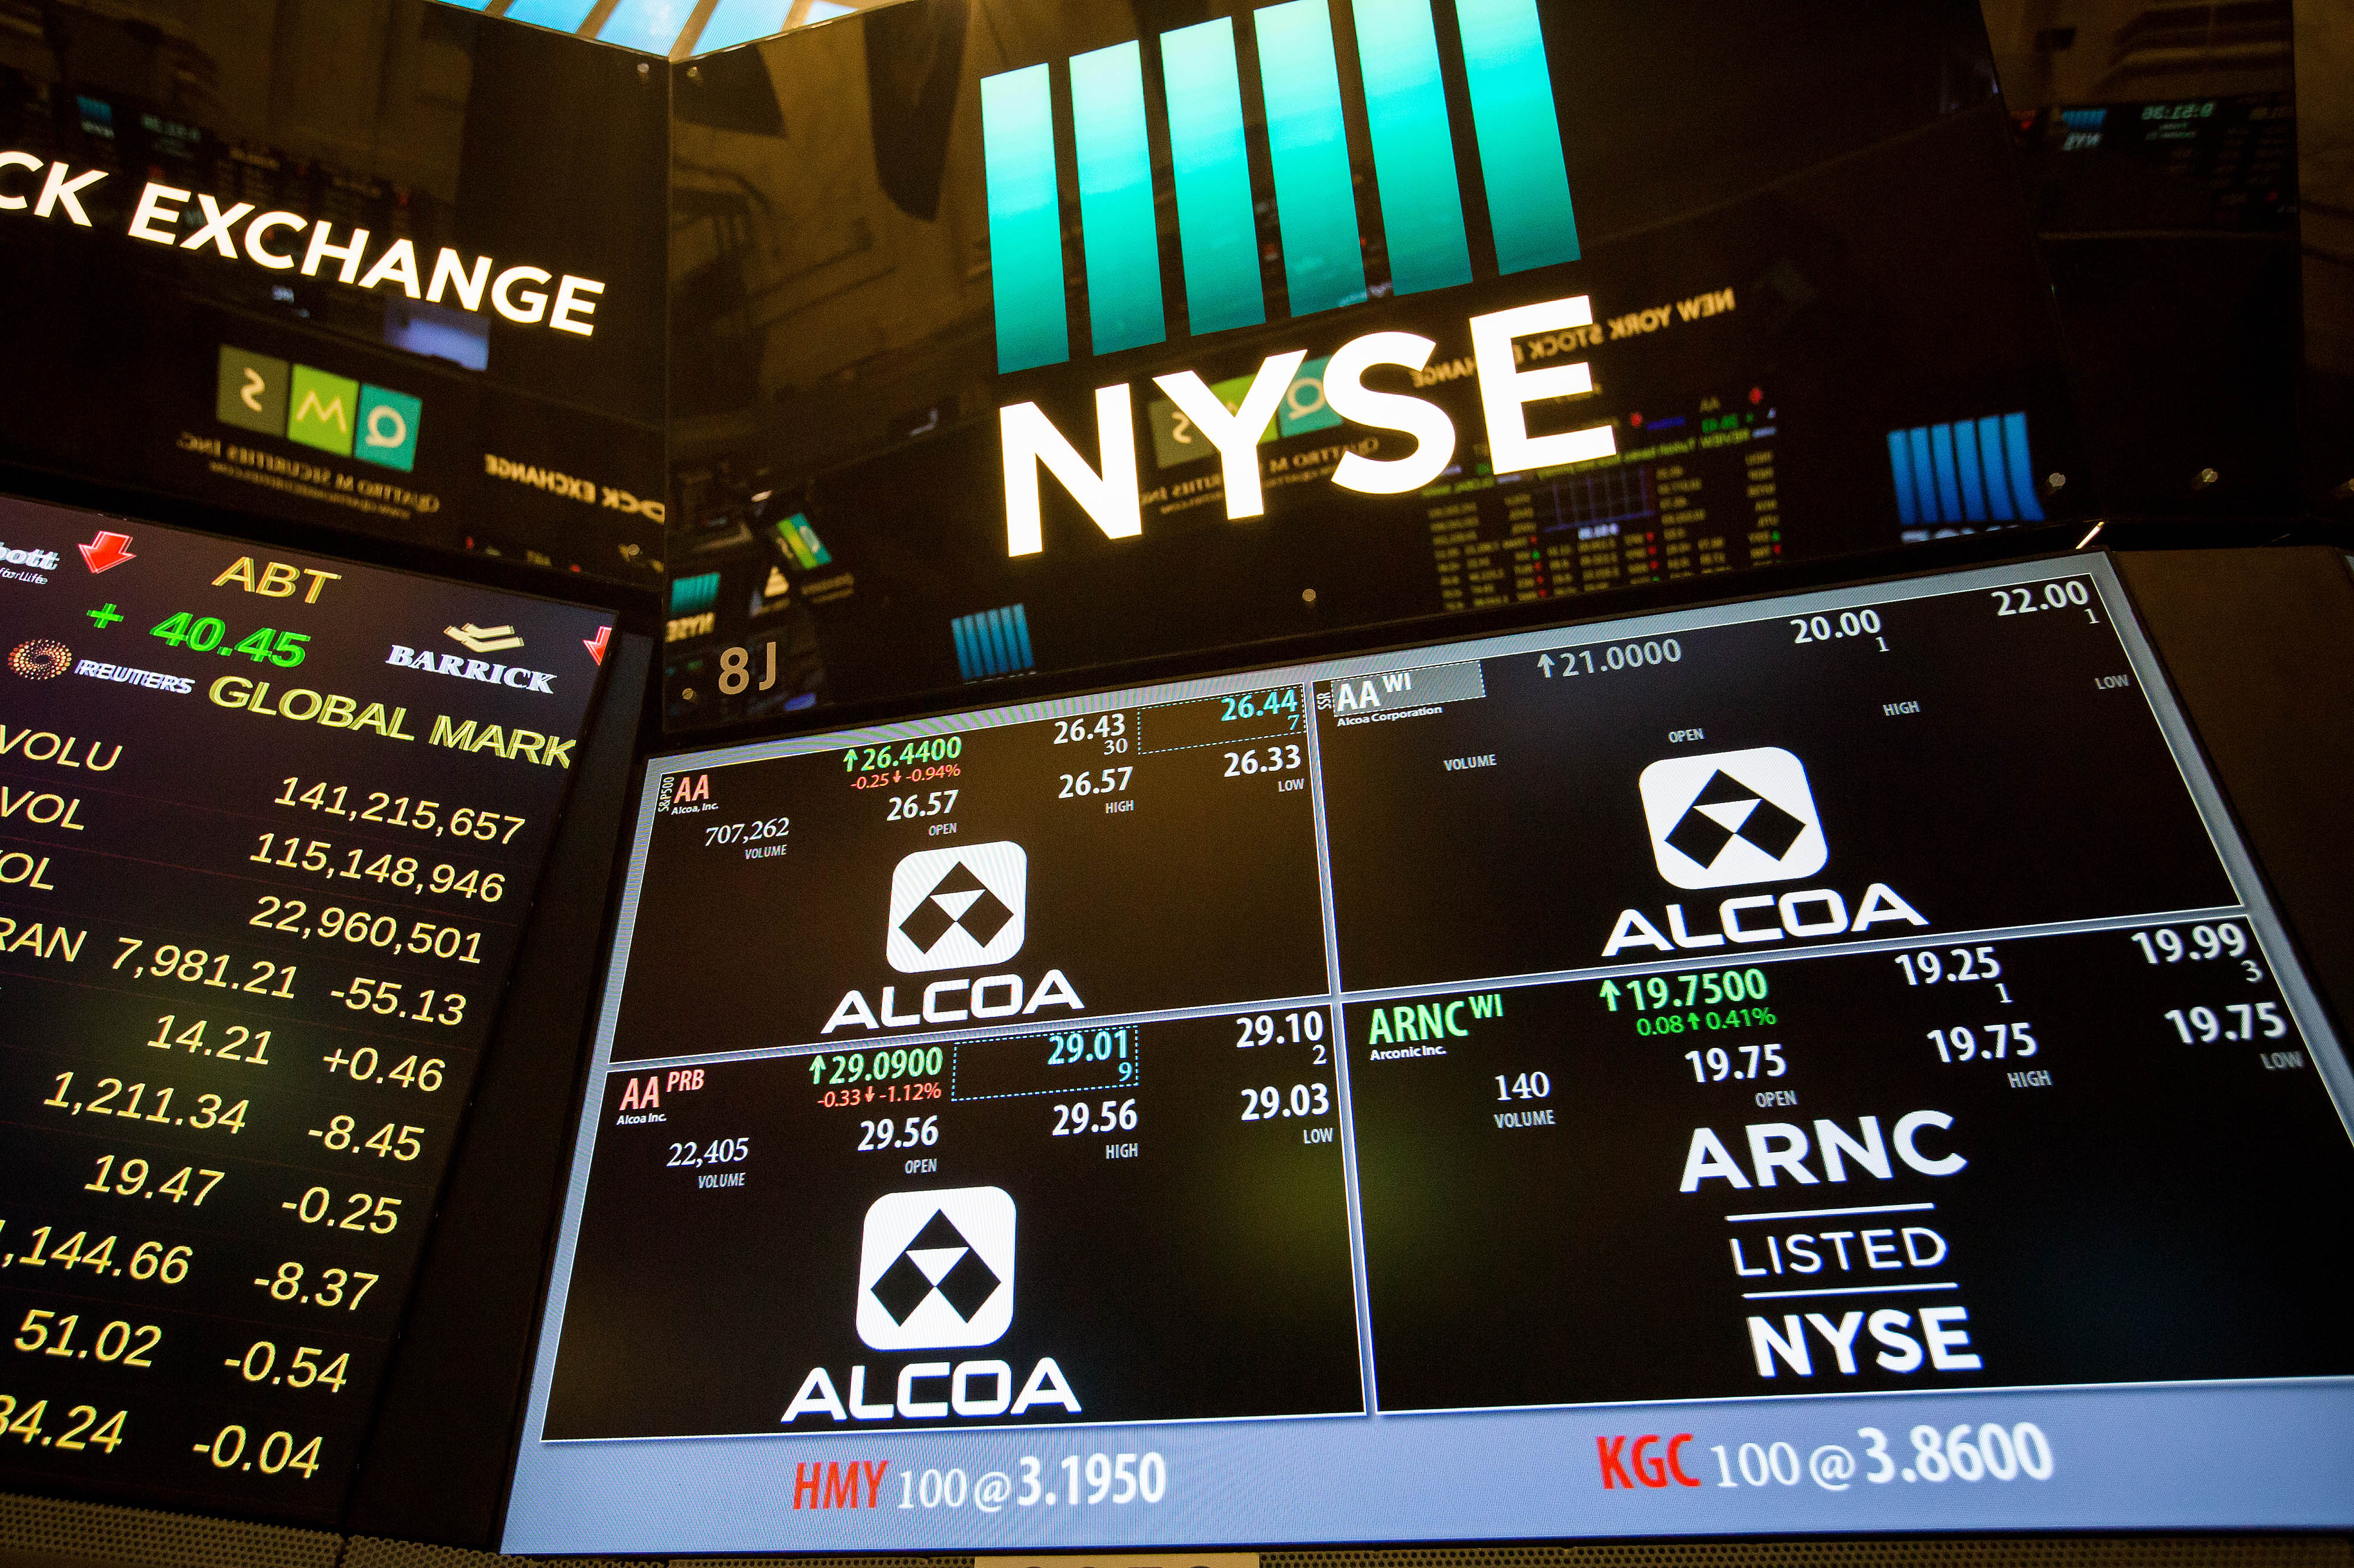 Trading On The Floor Of The NYSE As U.S. Stocks Trim Slide While Consumer Shares Rise On Deal Activity